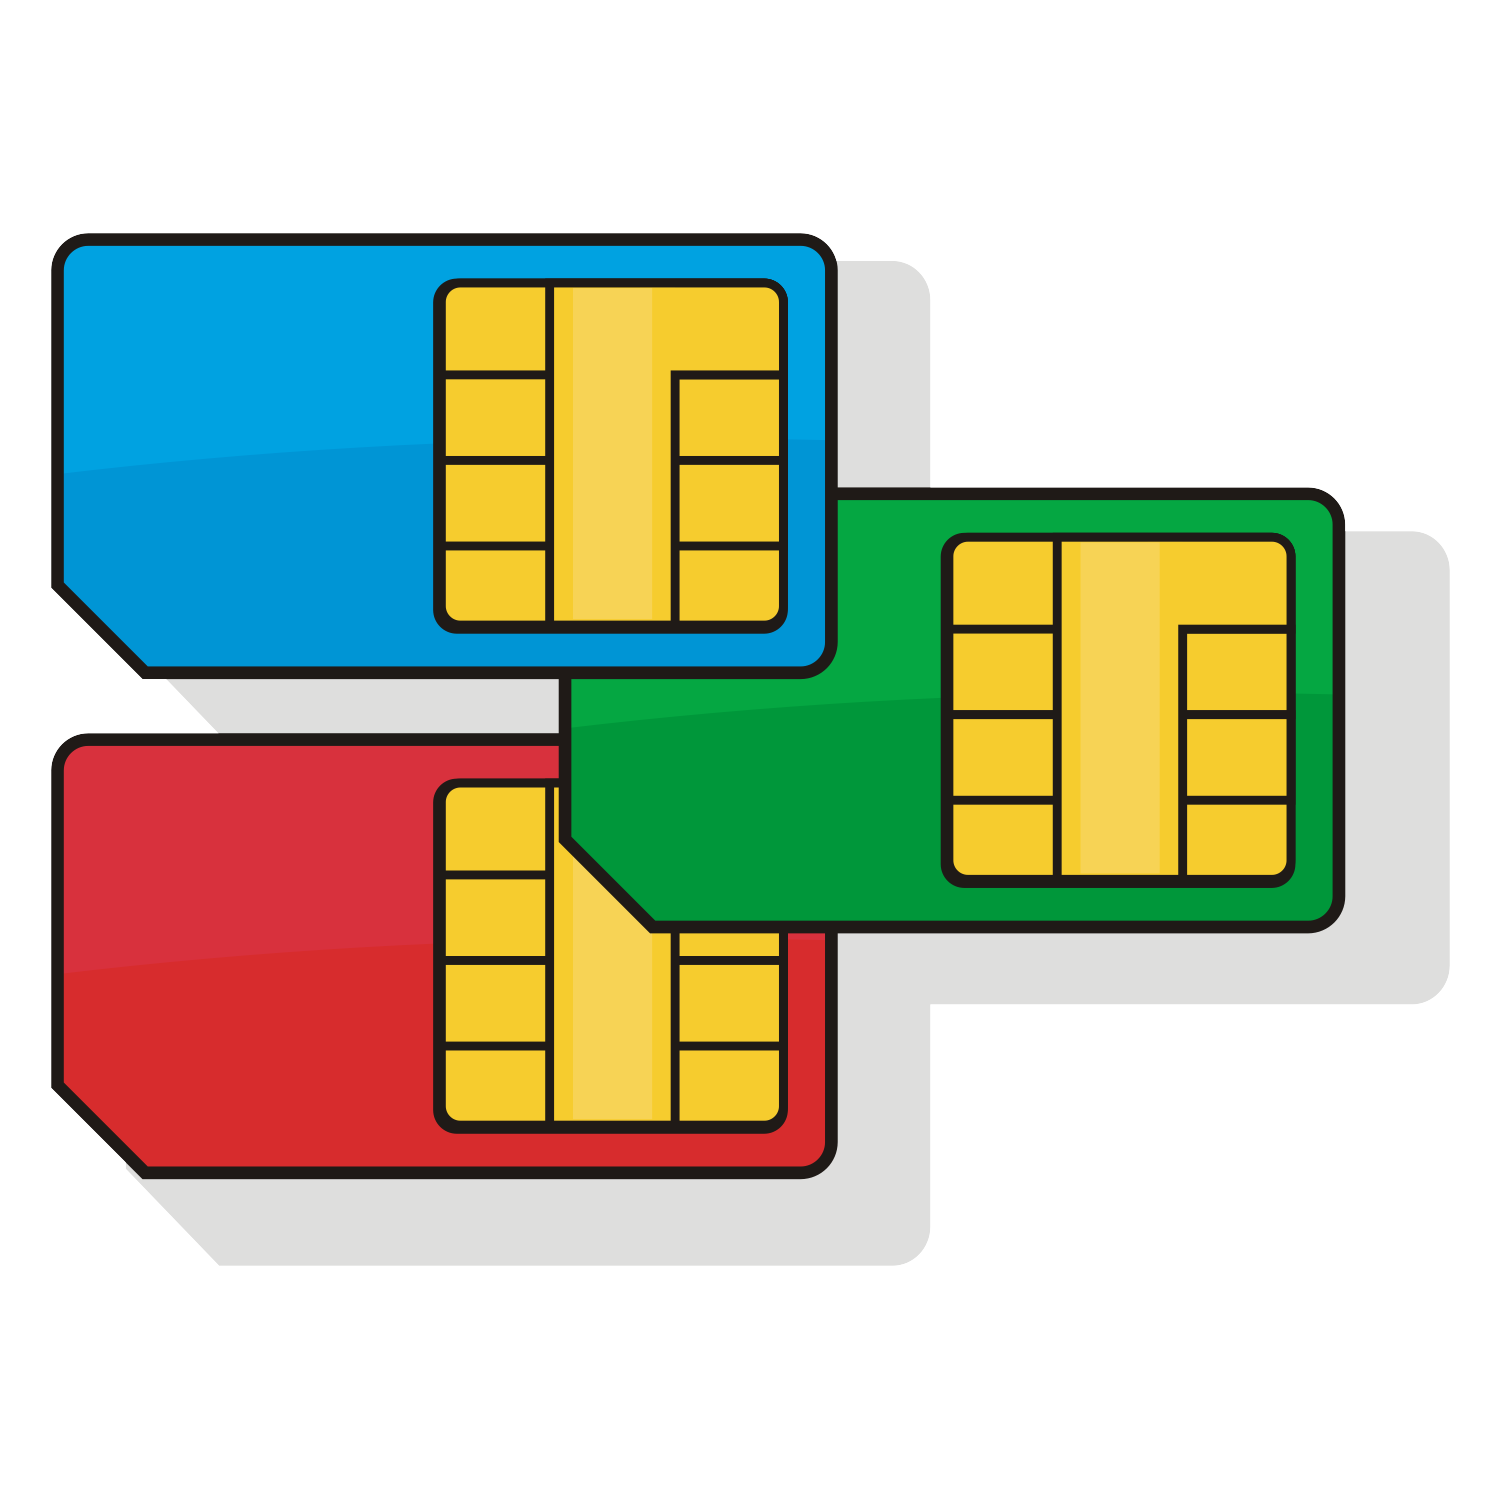 SIM cards. Vector illustration.